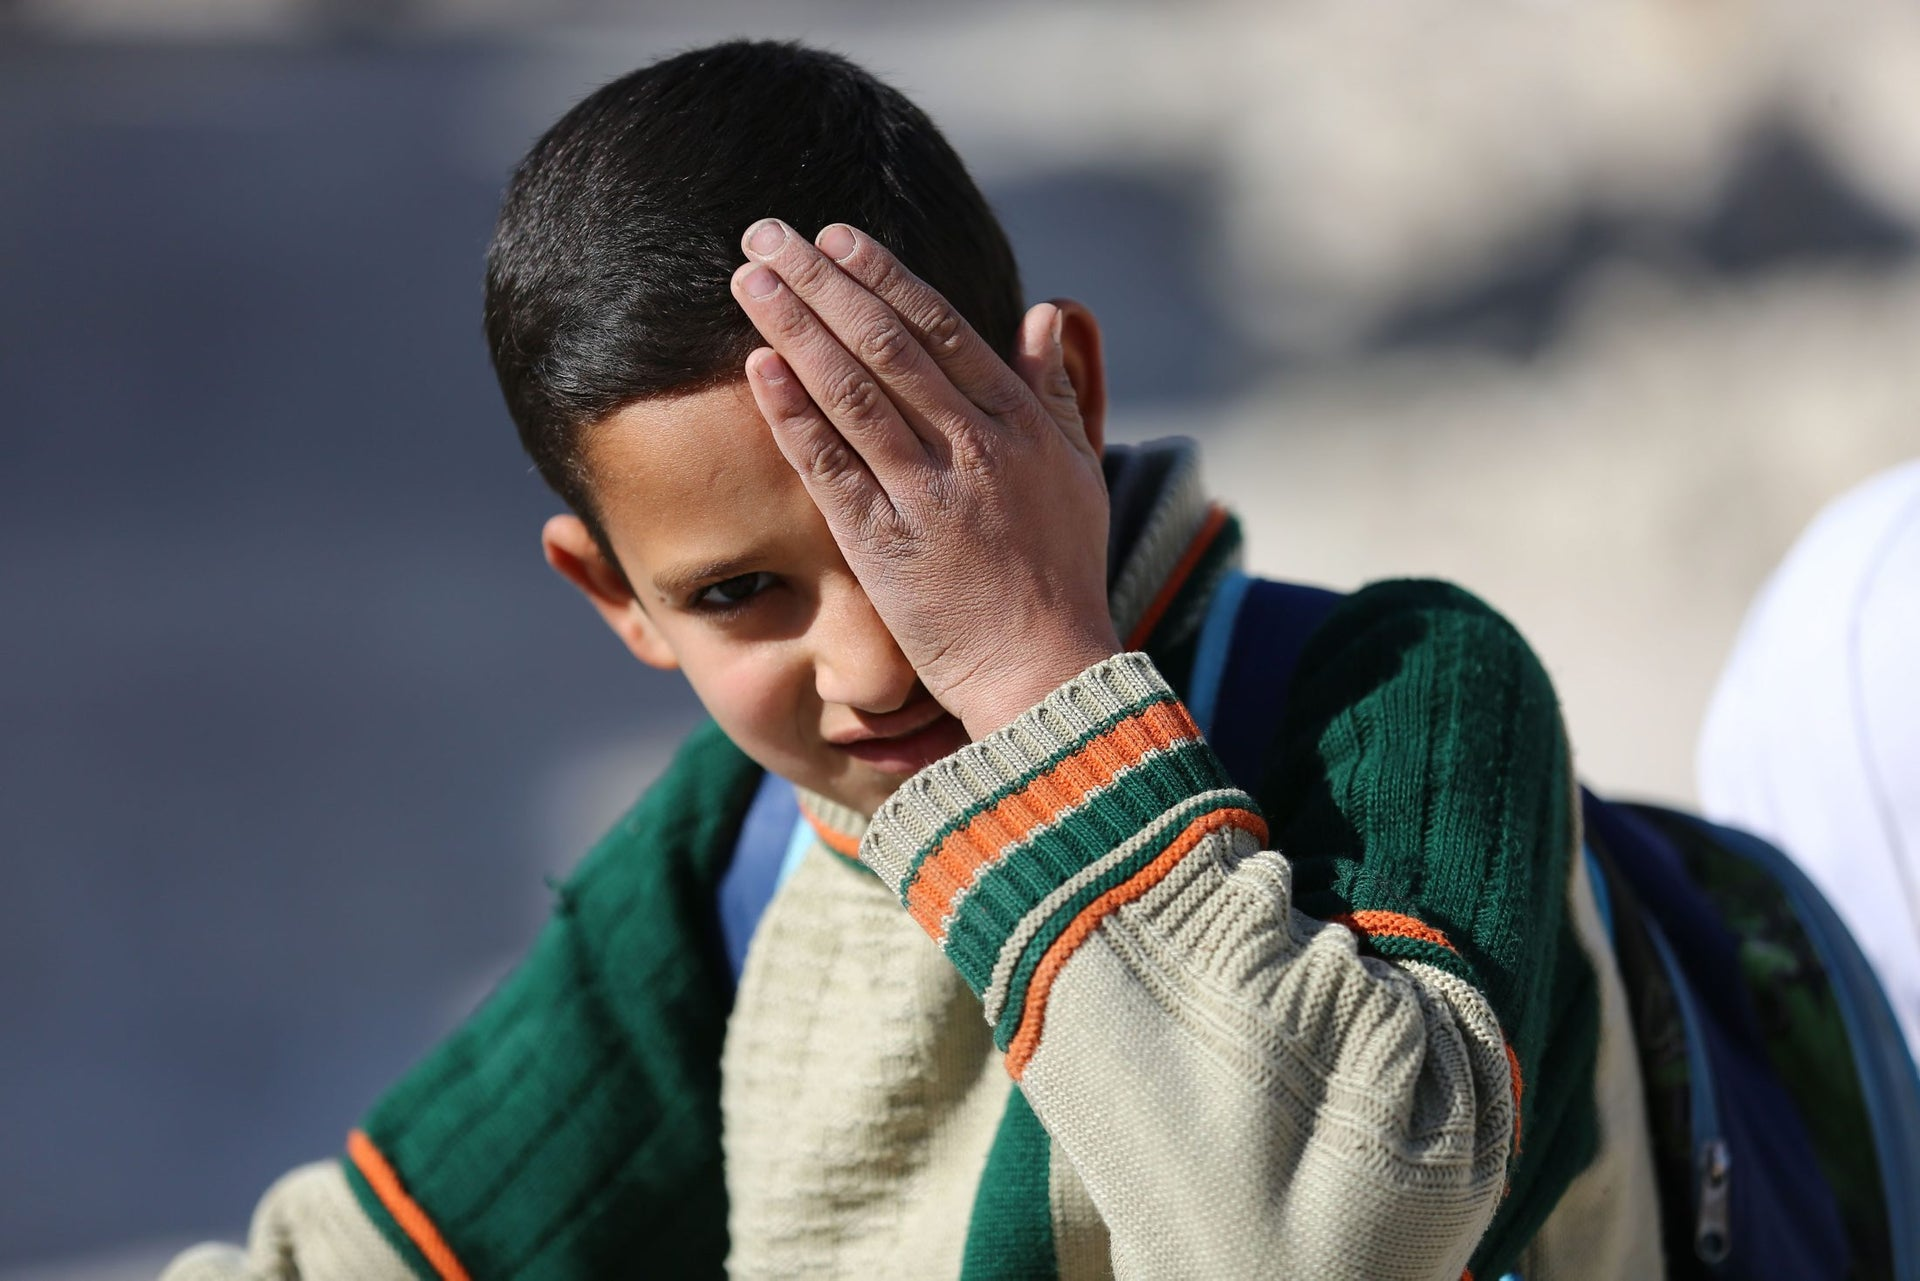 A child poses covering one eye with his hand in the rebel-held town of Douma in Syria's besieged eastern Ghouta region, on December 18, 2017, as part of a campaign in solidarity with a baby boy, Karim Abdallah, who lost an eye, as well as his mother, in government shelling on the nearby town of Hammouria.